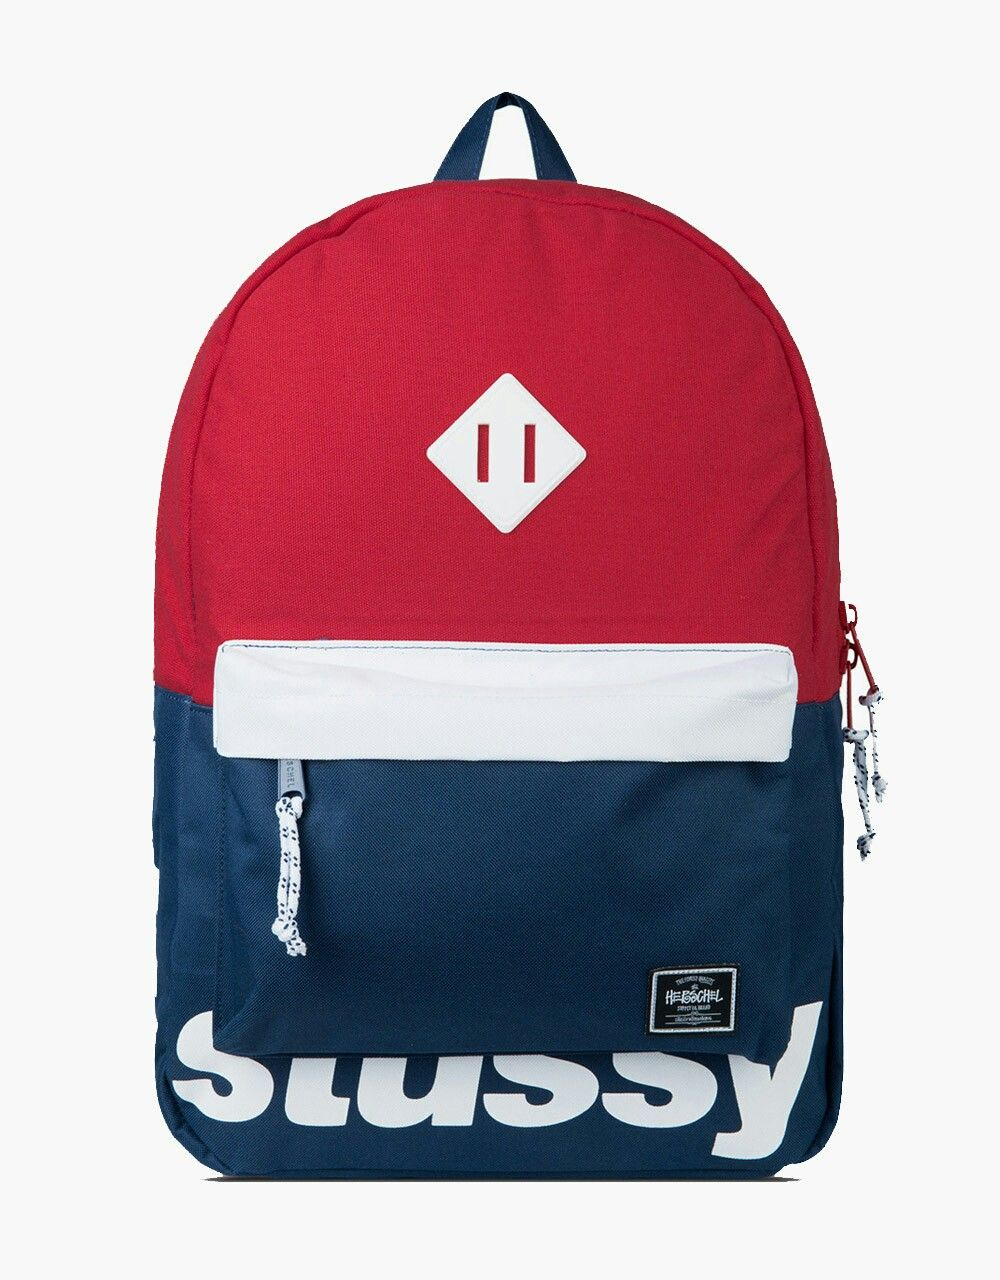 Pin By Horror Girl On Stussy Backpacks Stussy Herschel Supply Co